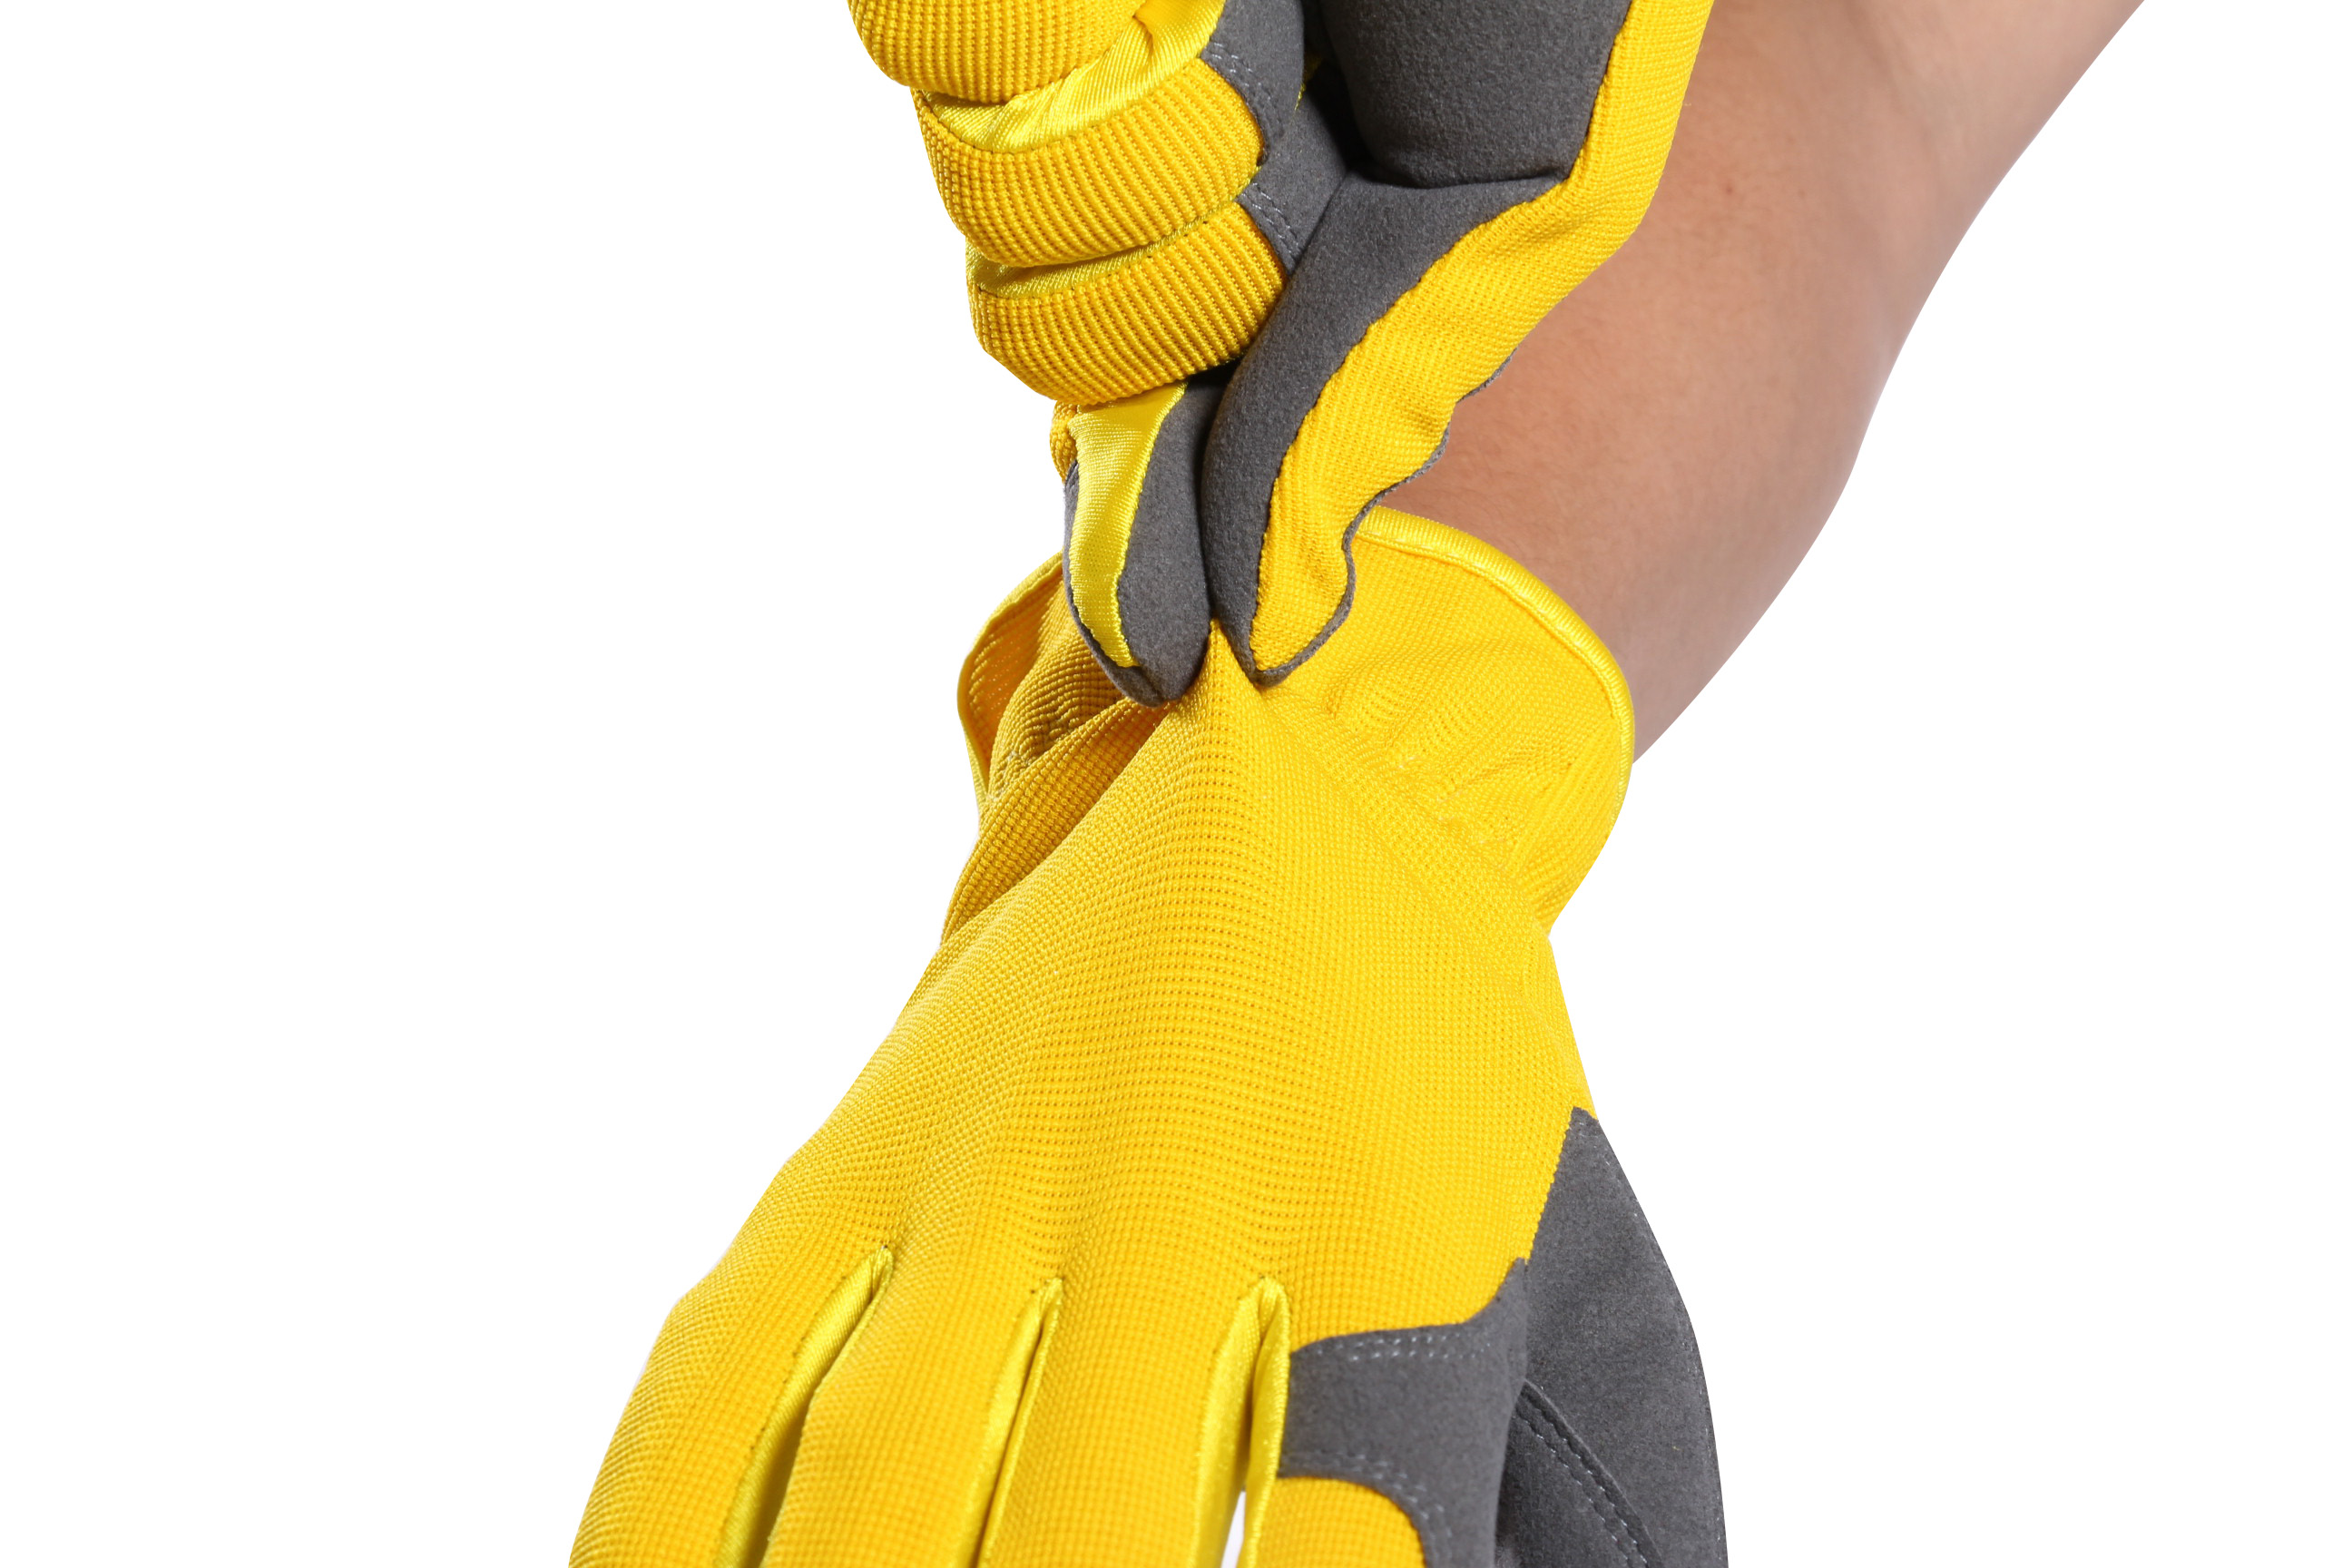 Windproof outdoor sports glove